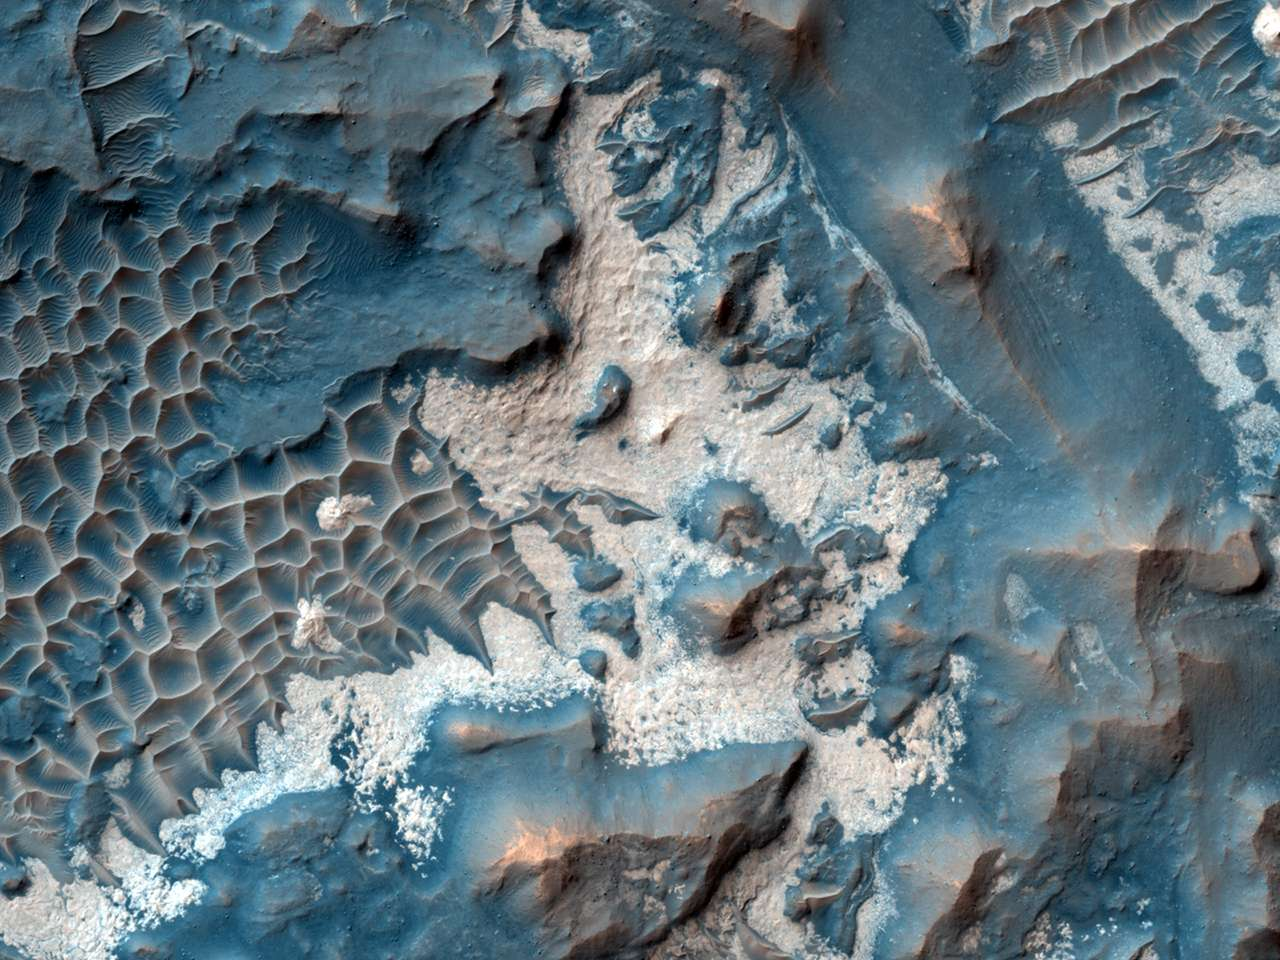 C'est à proximité du grand canyon de Valles Marineris que Hirise a photographié ce matériau brillant. D'après les analyses spectrales il serait riche en eau. © Nasa/JPL/University of Arizona